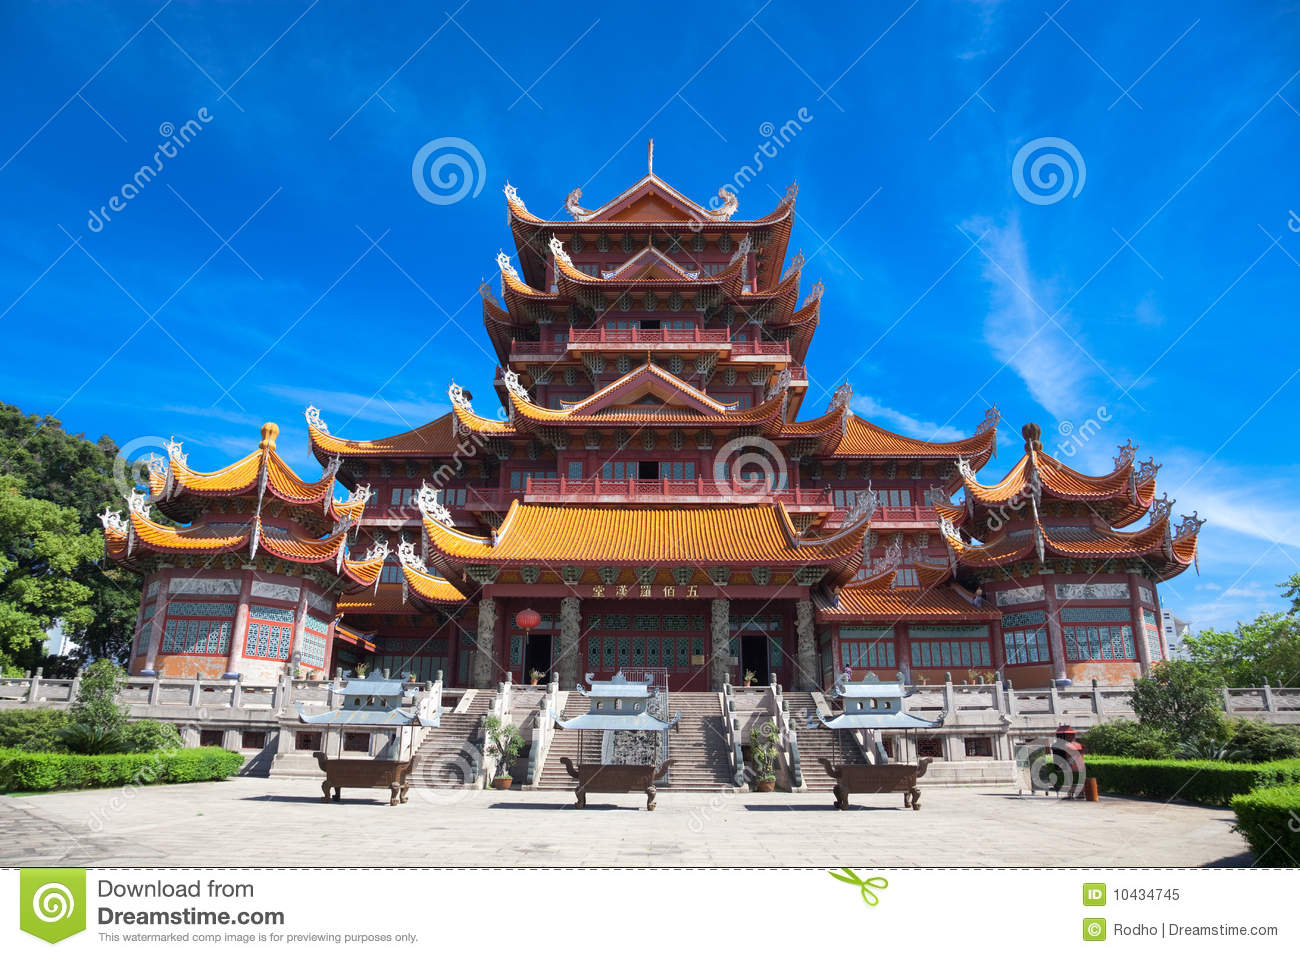 carle place buddhist personals Singles hotels in new york city  carle place on long island - new york city forum  didn't realize there was one just for carle place.